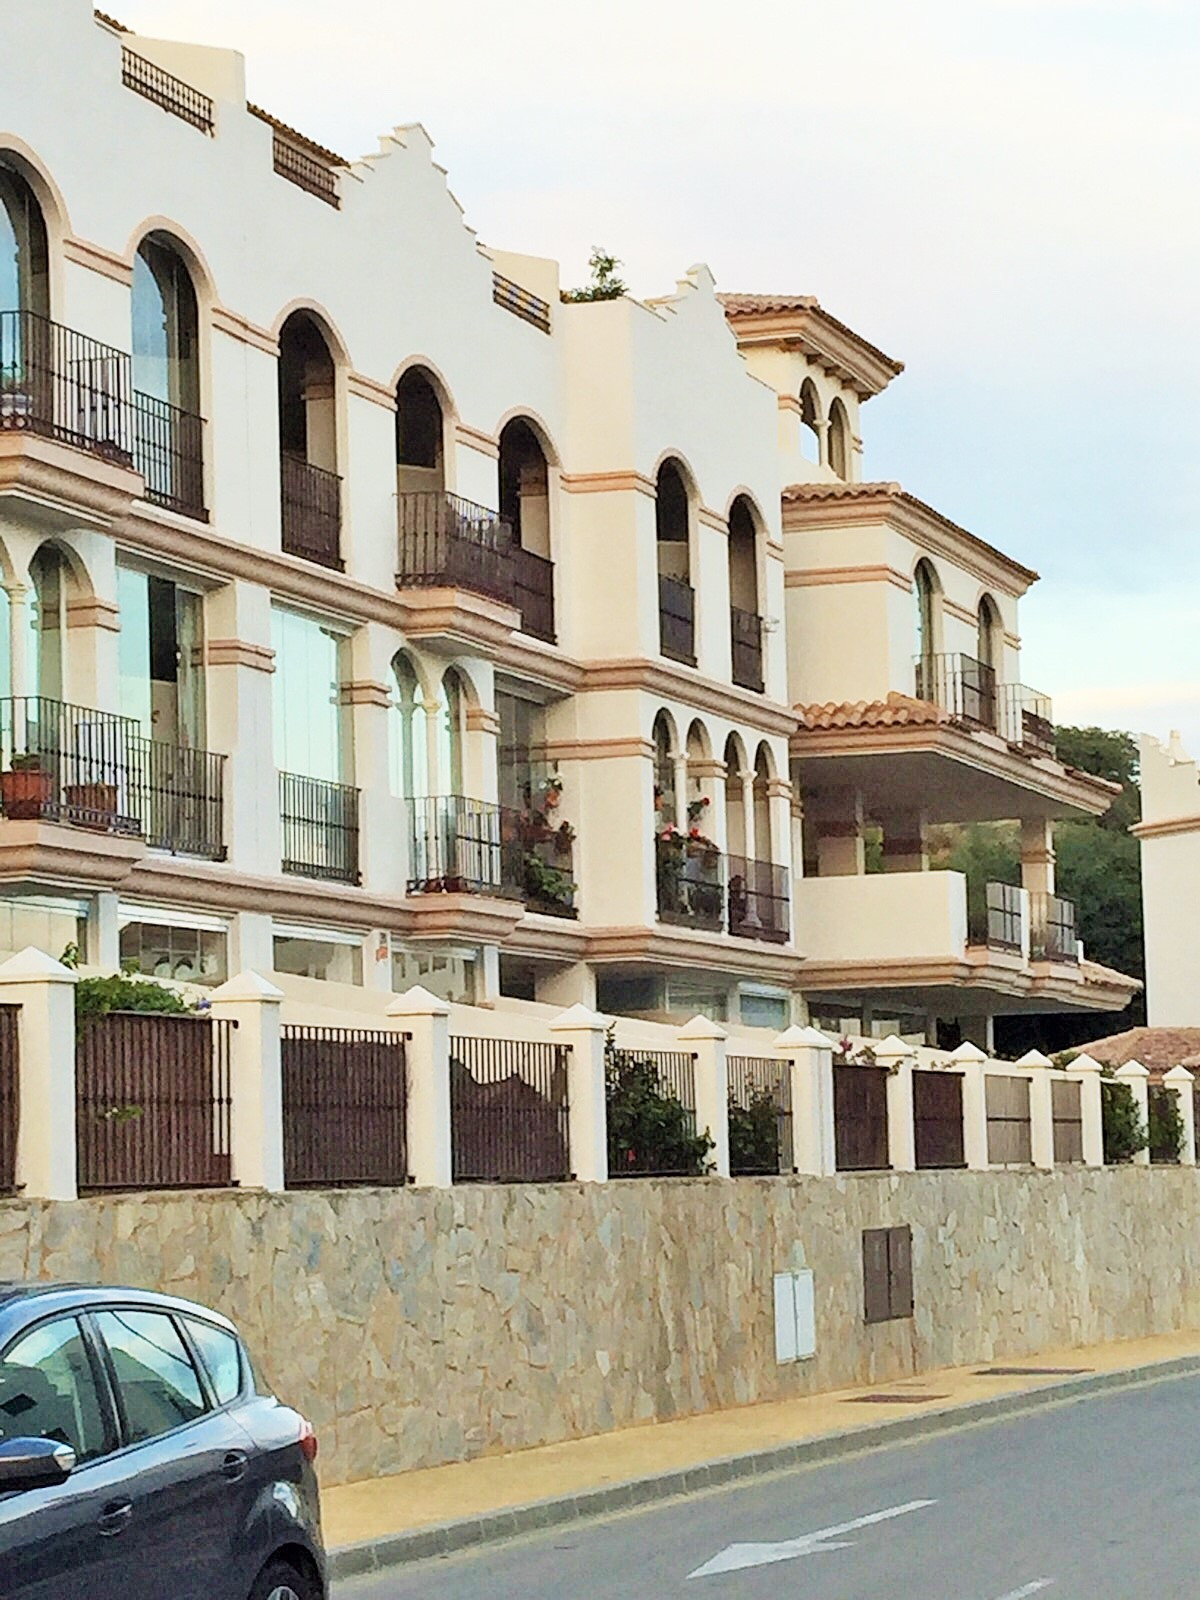 A opportunity to buy a luxury apartment in the most sought after area on the Costa del Sol - La Cala, Spain